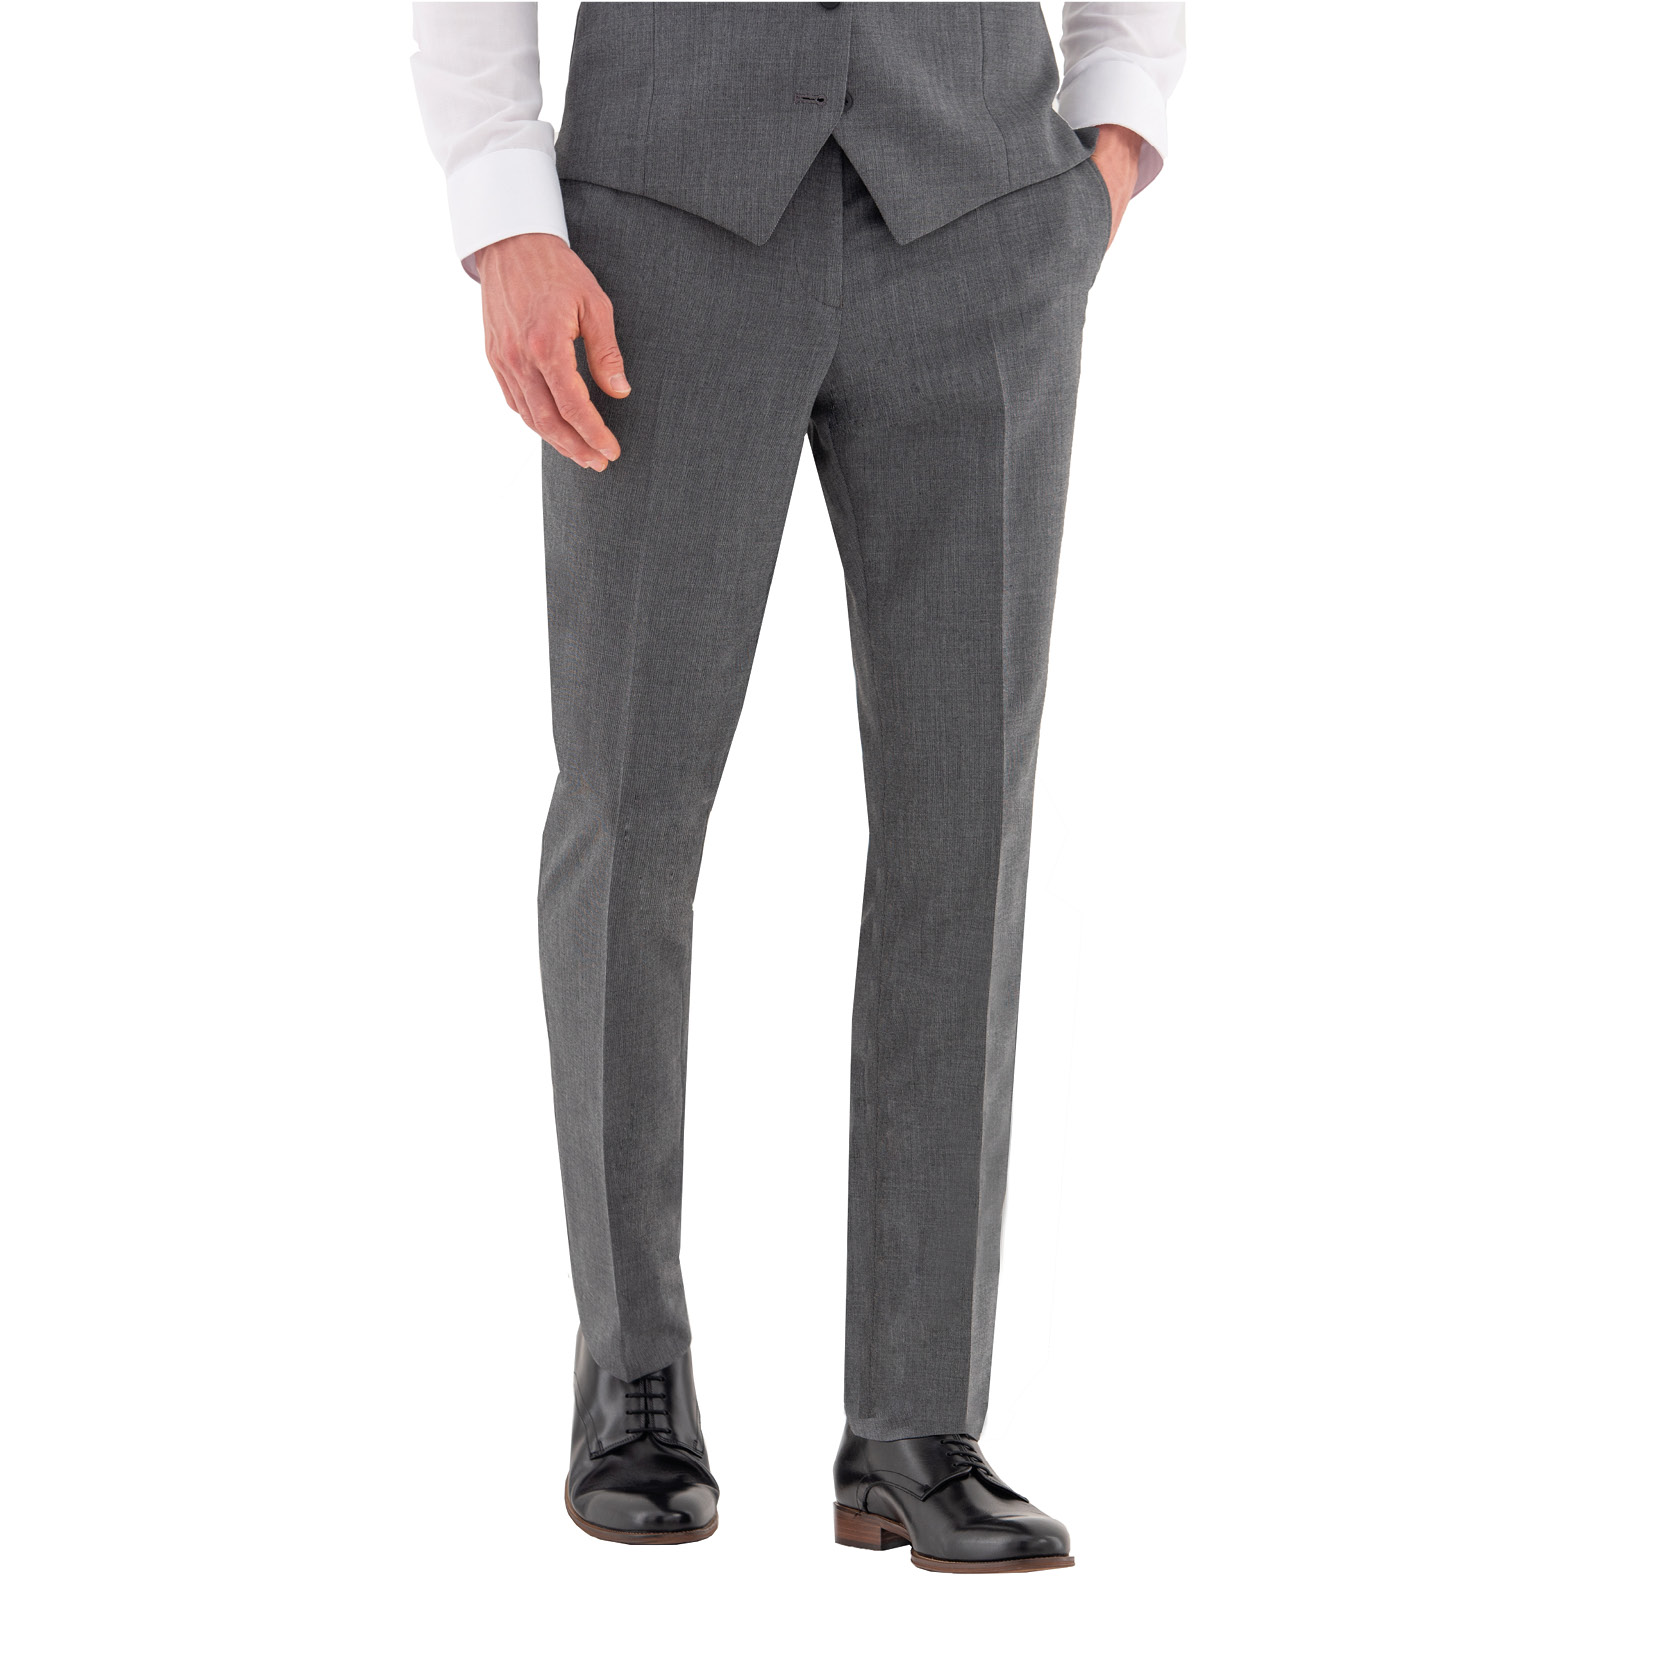 BK Sixth Form Mens Slimfit Trousers